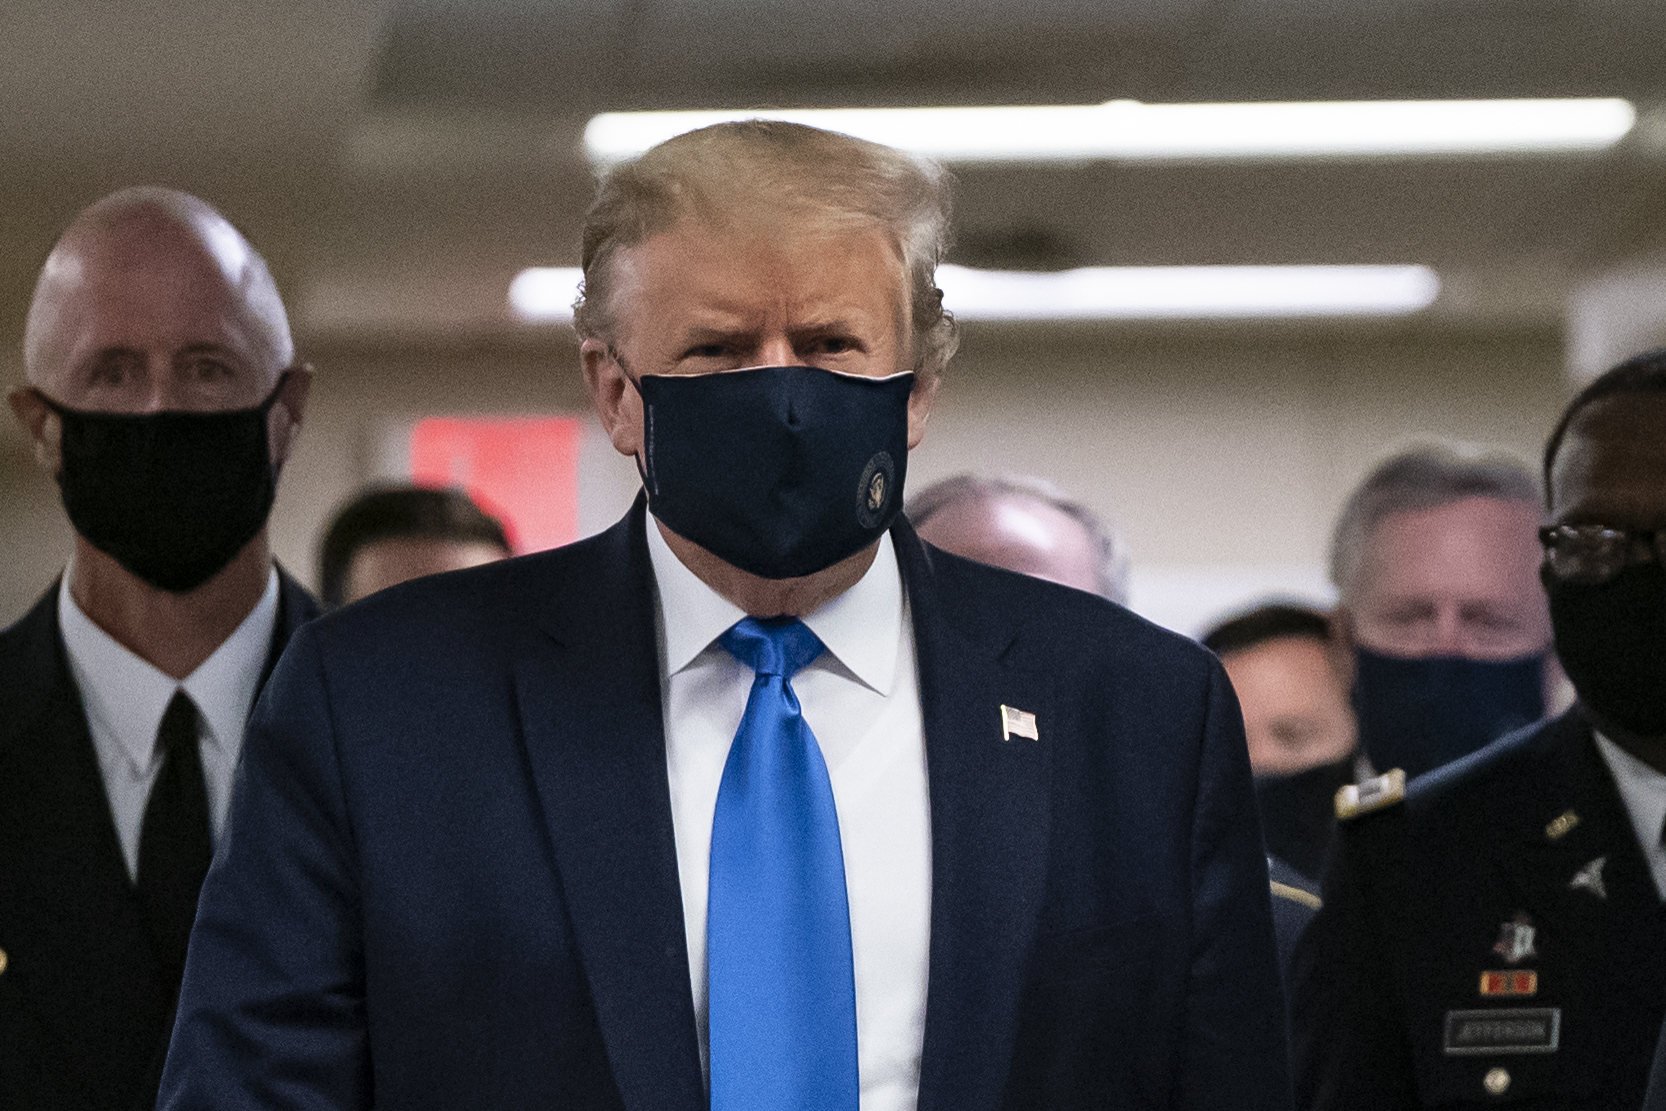 President Donald Trump wears a mask as he visits Walter Reed National Military Medical Center in Bethesda, Maryland on July 11, 2020. (ALEX EDELMAN/AFP via Getty Images)